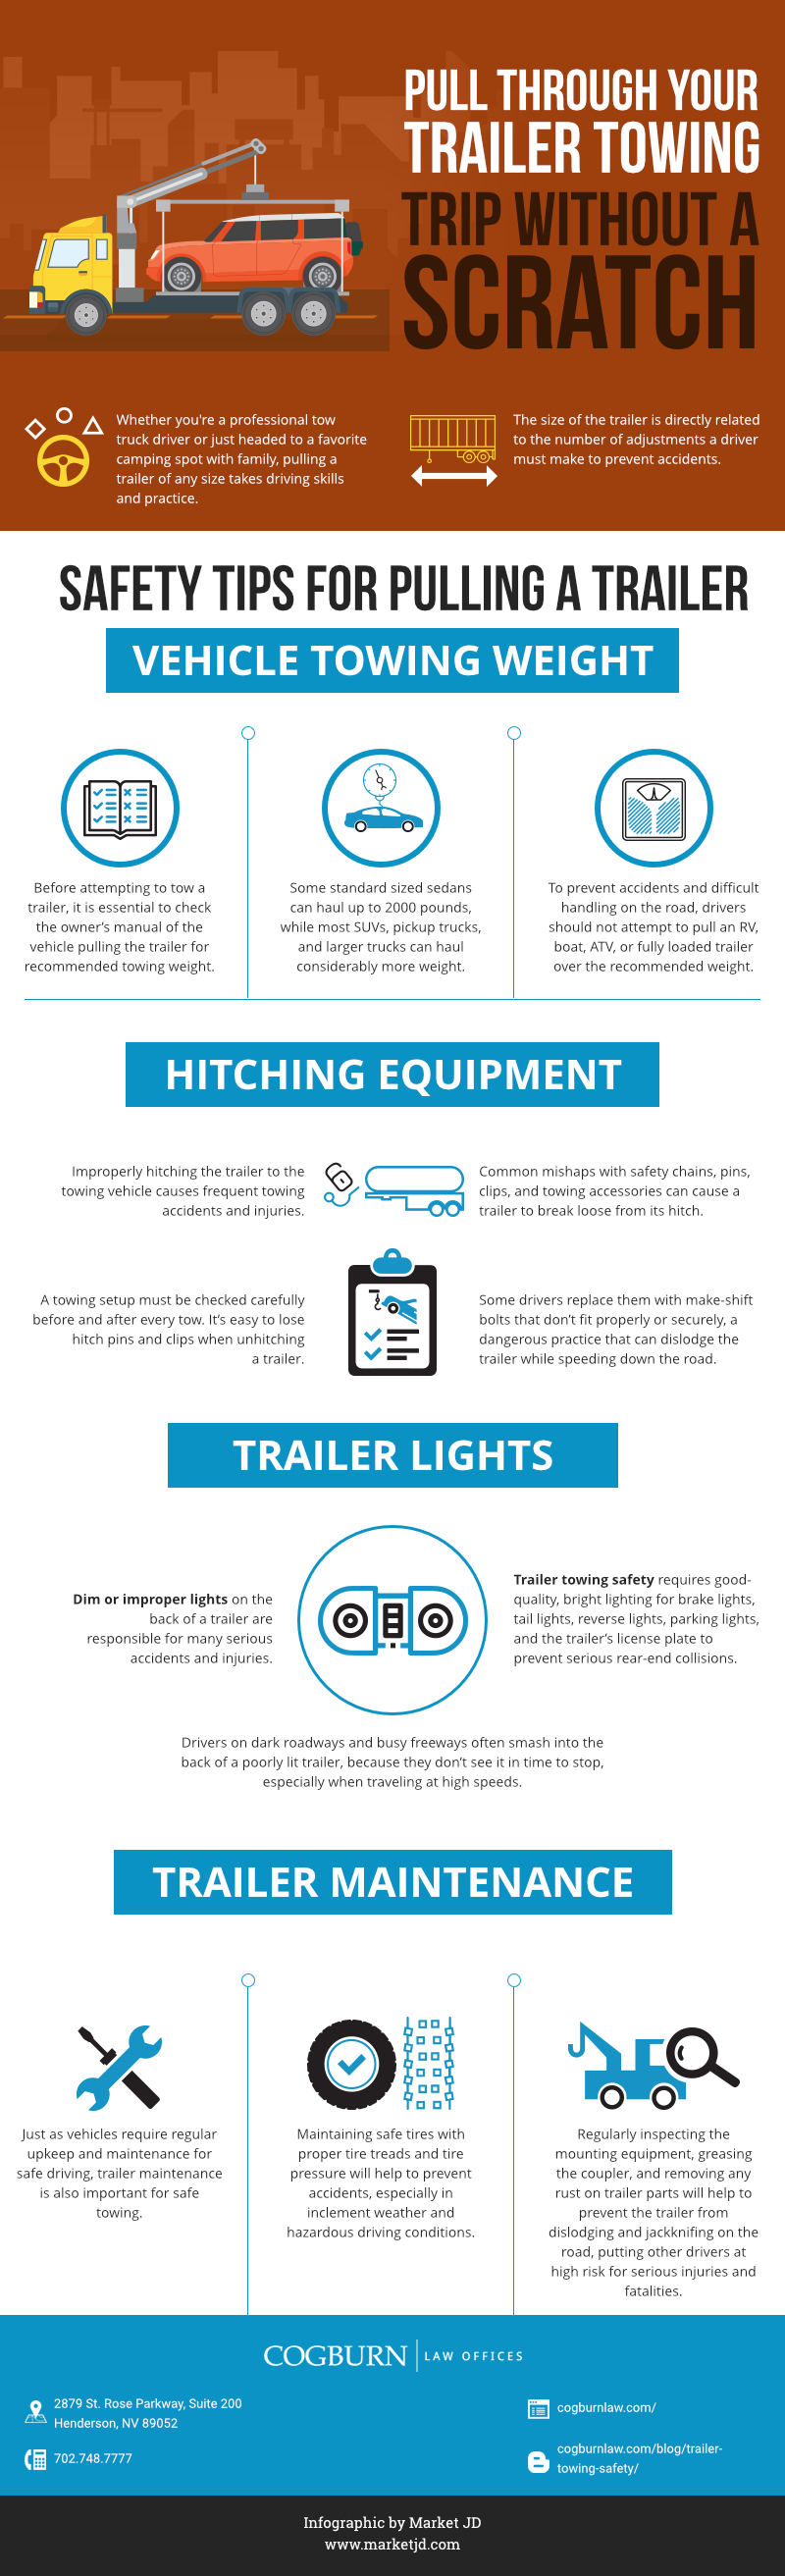 tips for pulling a trailer safely INFOGRAPHIC